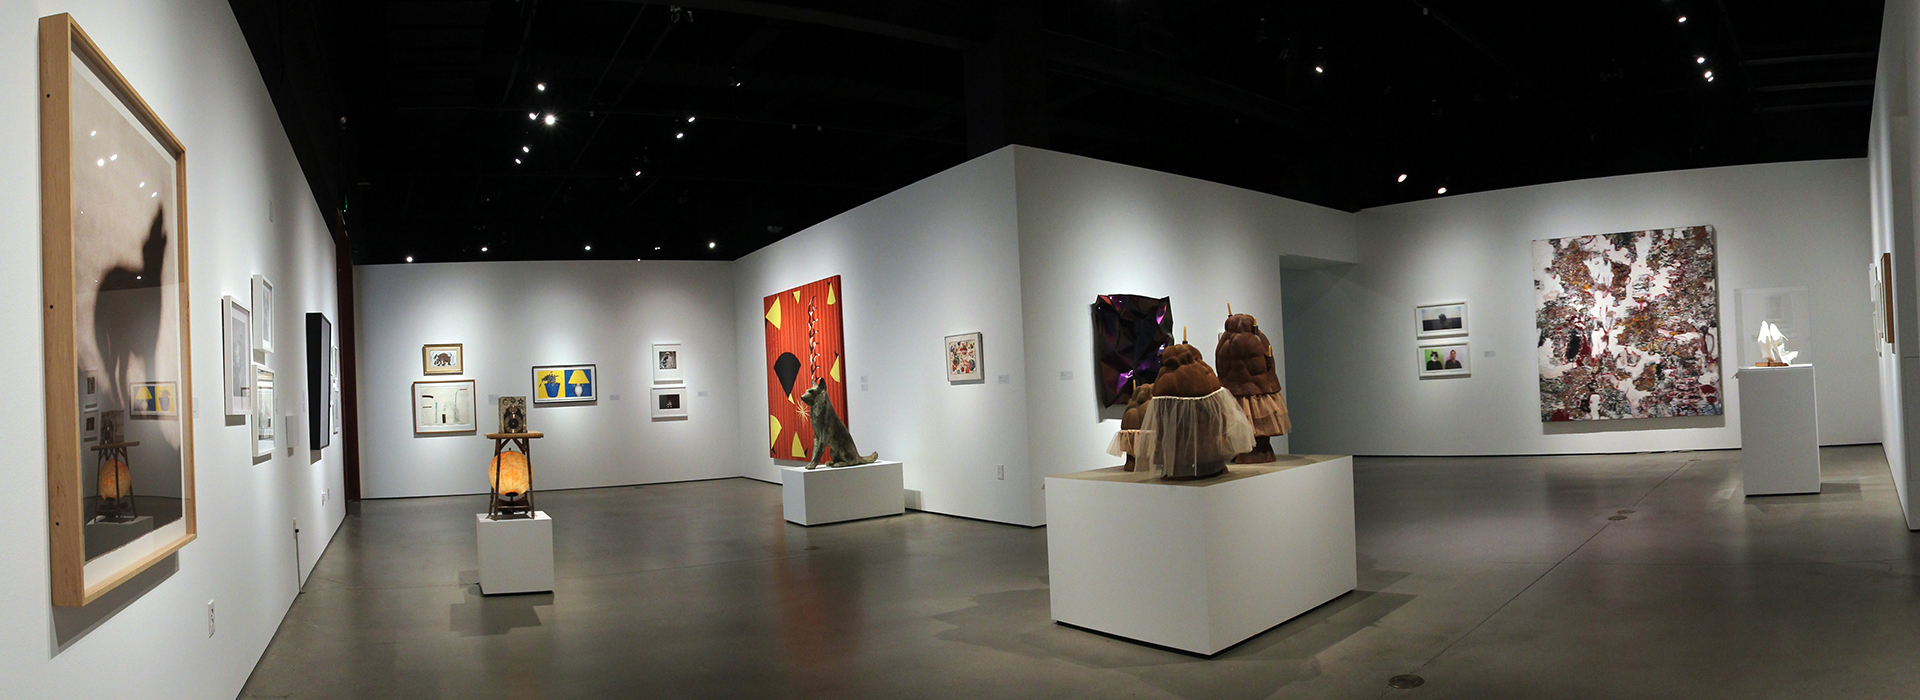 CSUSB art museum to host Artists in Conversation panel